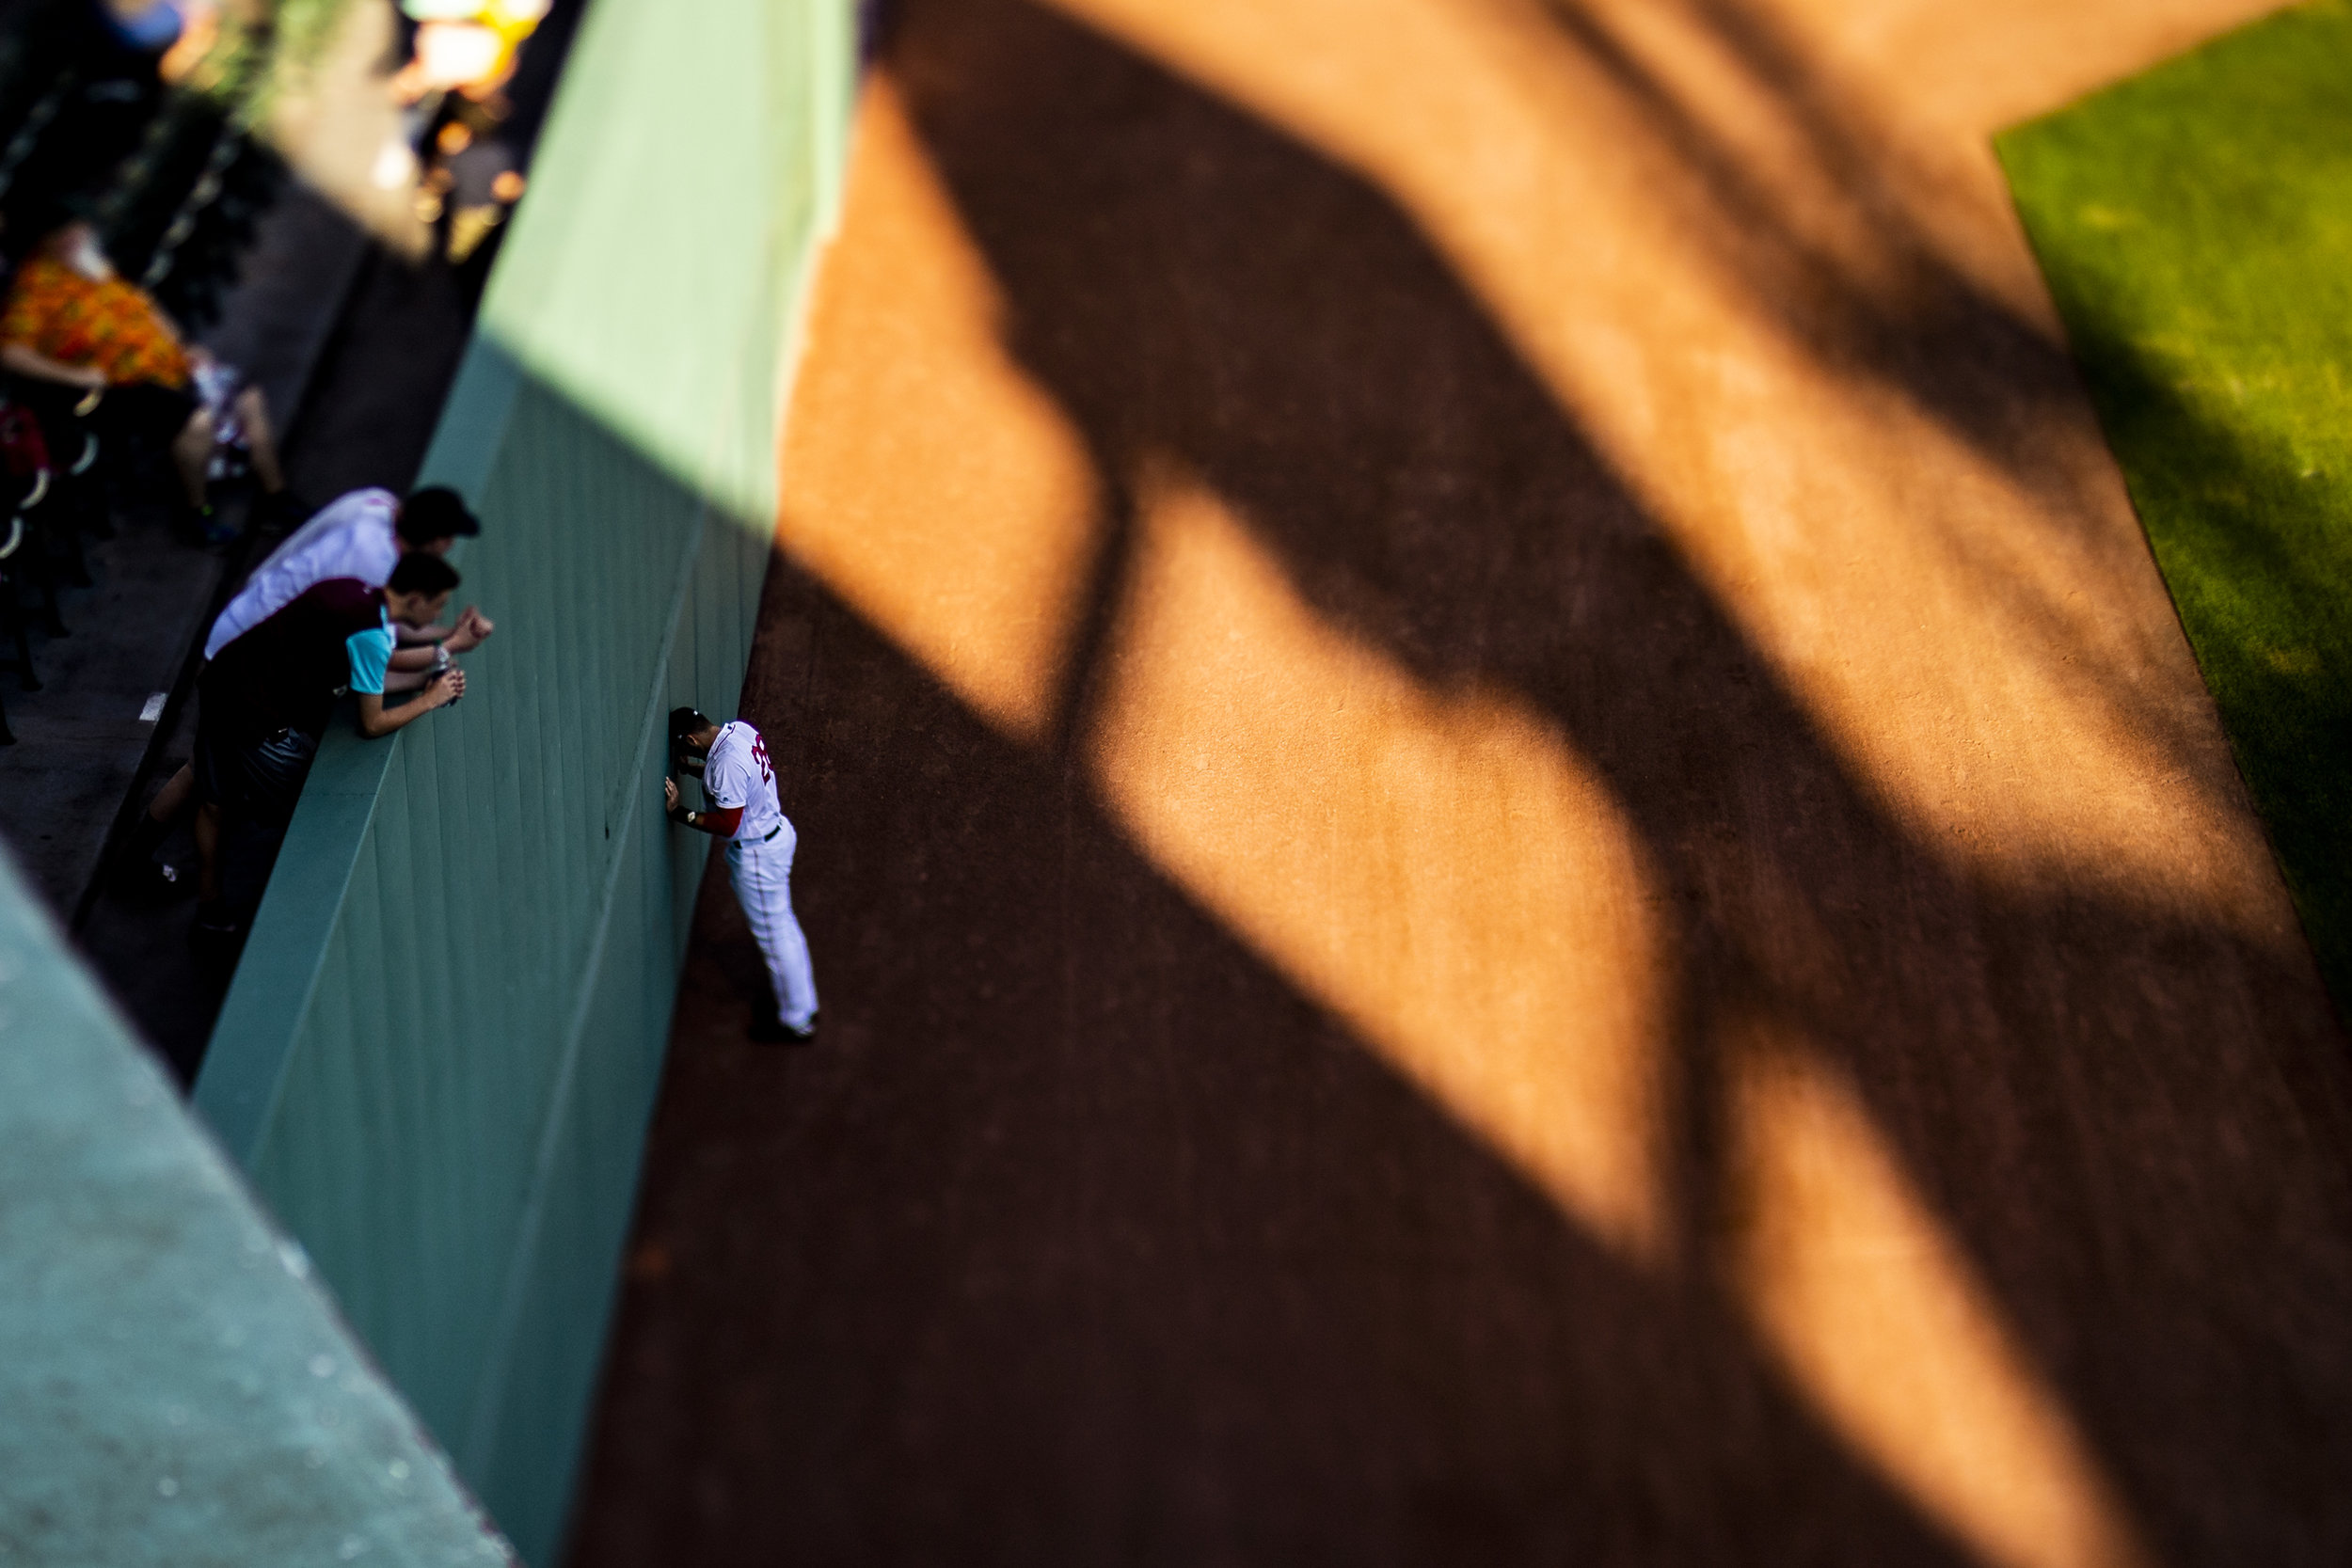 July 8, 2018, Boston, MA: Boston Red Sox outfielder J.D. Martinez goes through his pregame ritual in the outfield before the Boston Red Sox face the Texas Rangers Fenway Park in Boston, Massachusetts on Monday, July 9, 2018. (Photo by Matthew Thomas/Boston Red Sox)